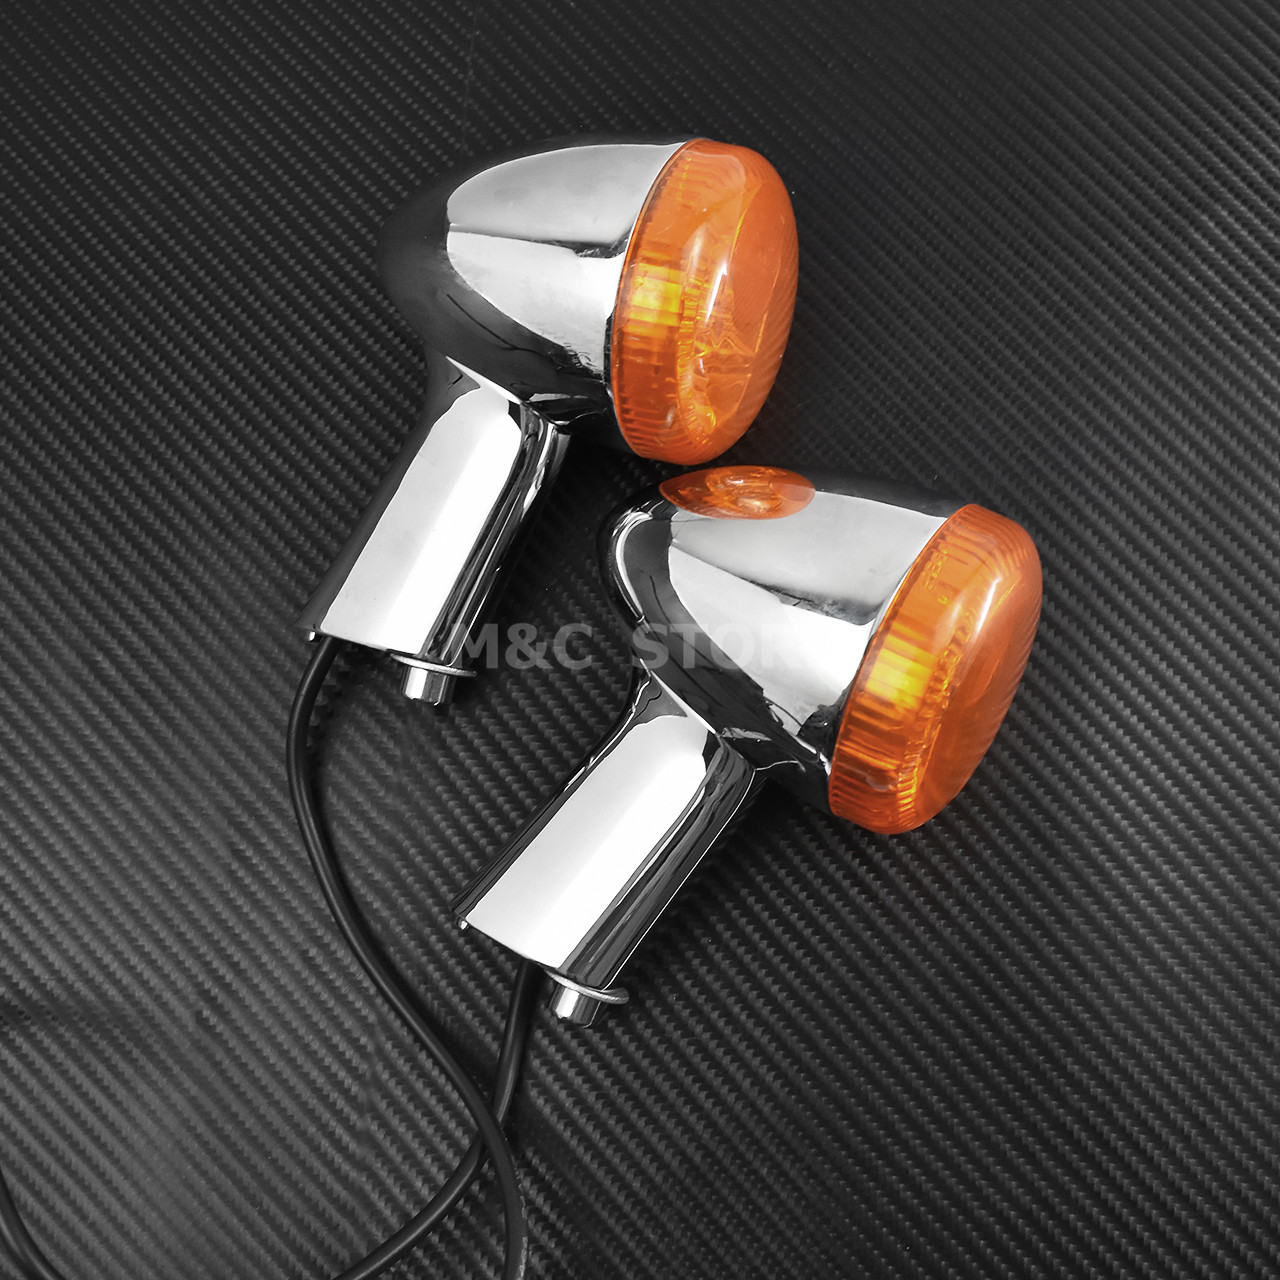 lowest price 1Pair Motorcycle Led Turn Signals Kit for Harley Road Glide Touring Sportster with 1156 1157 Base White Amber Led Turn Signal